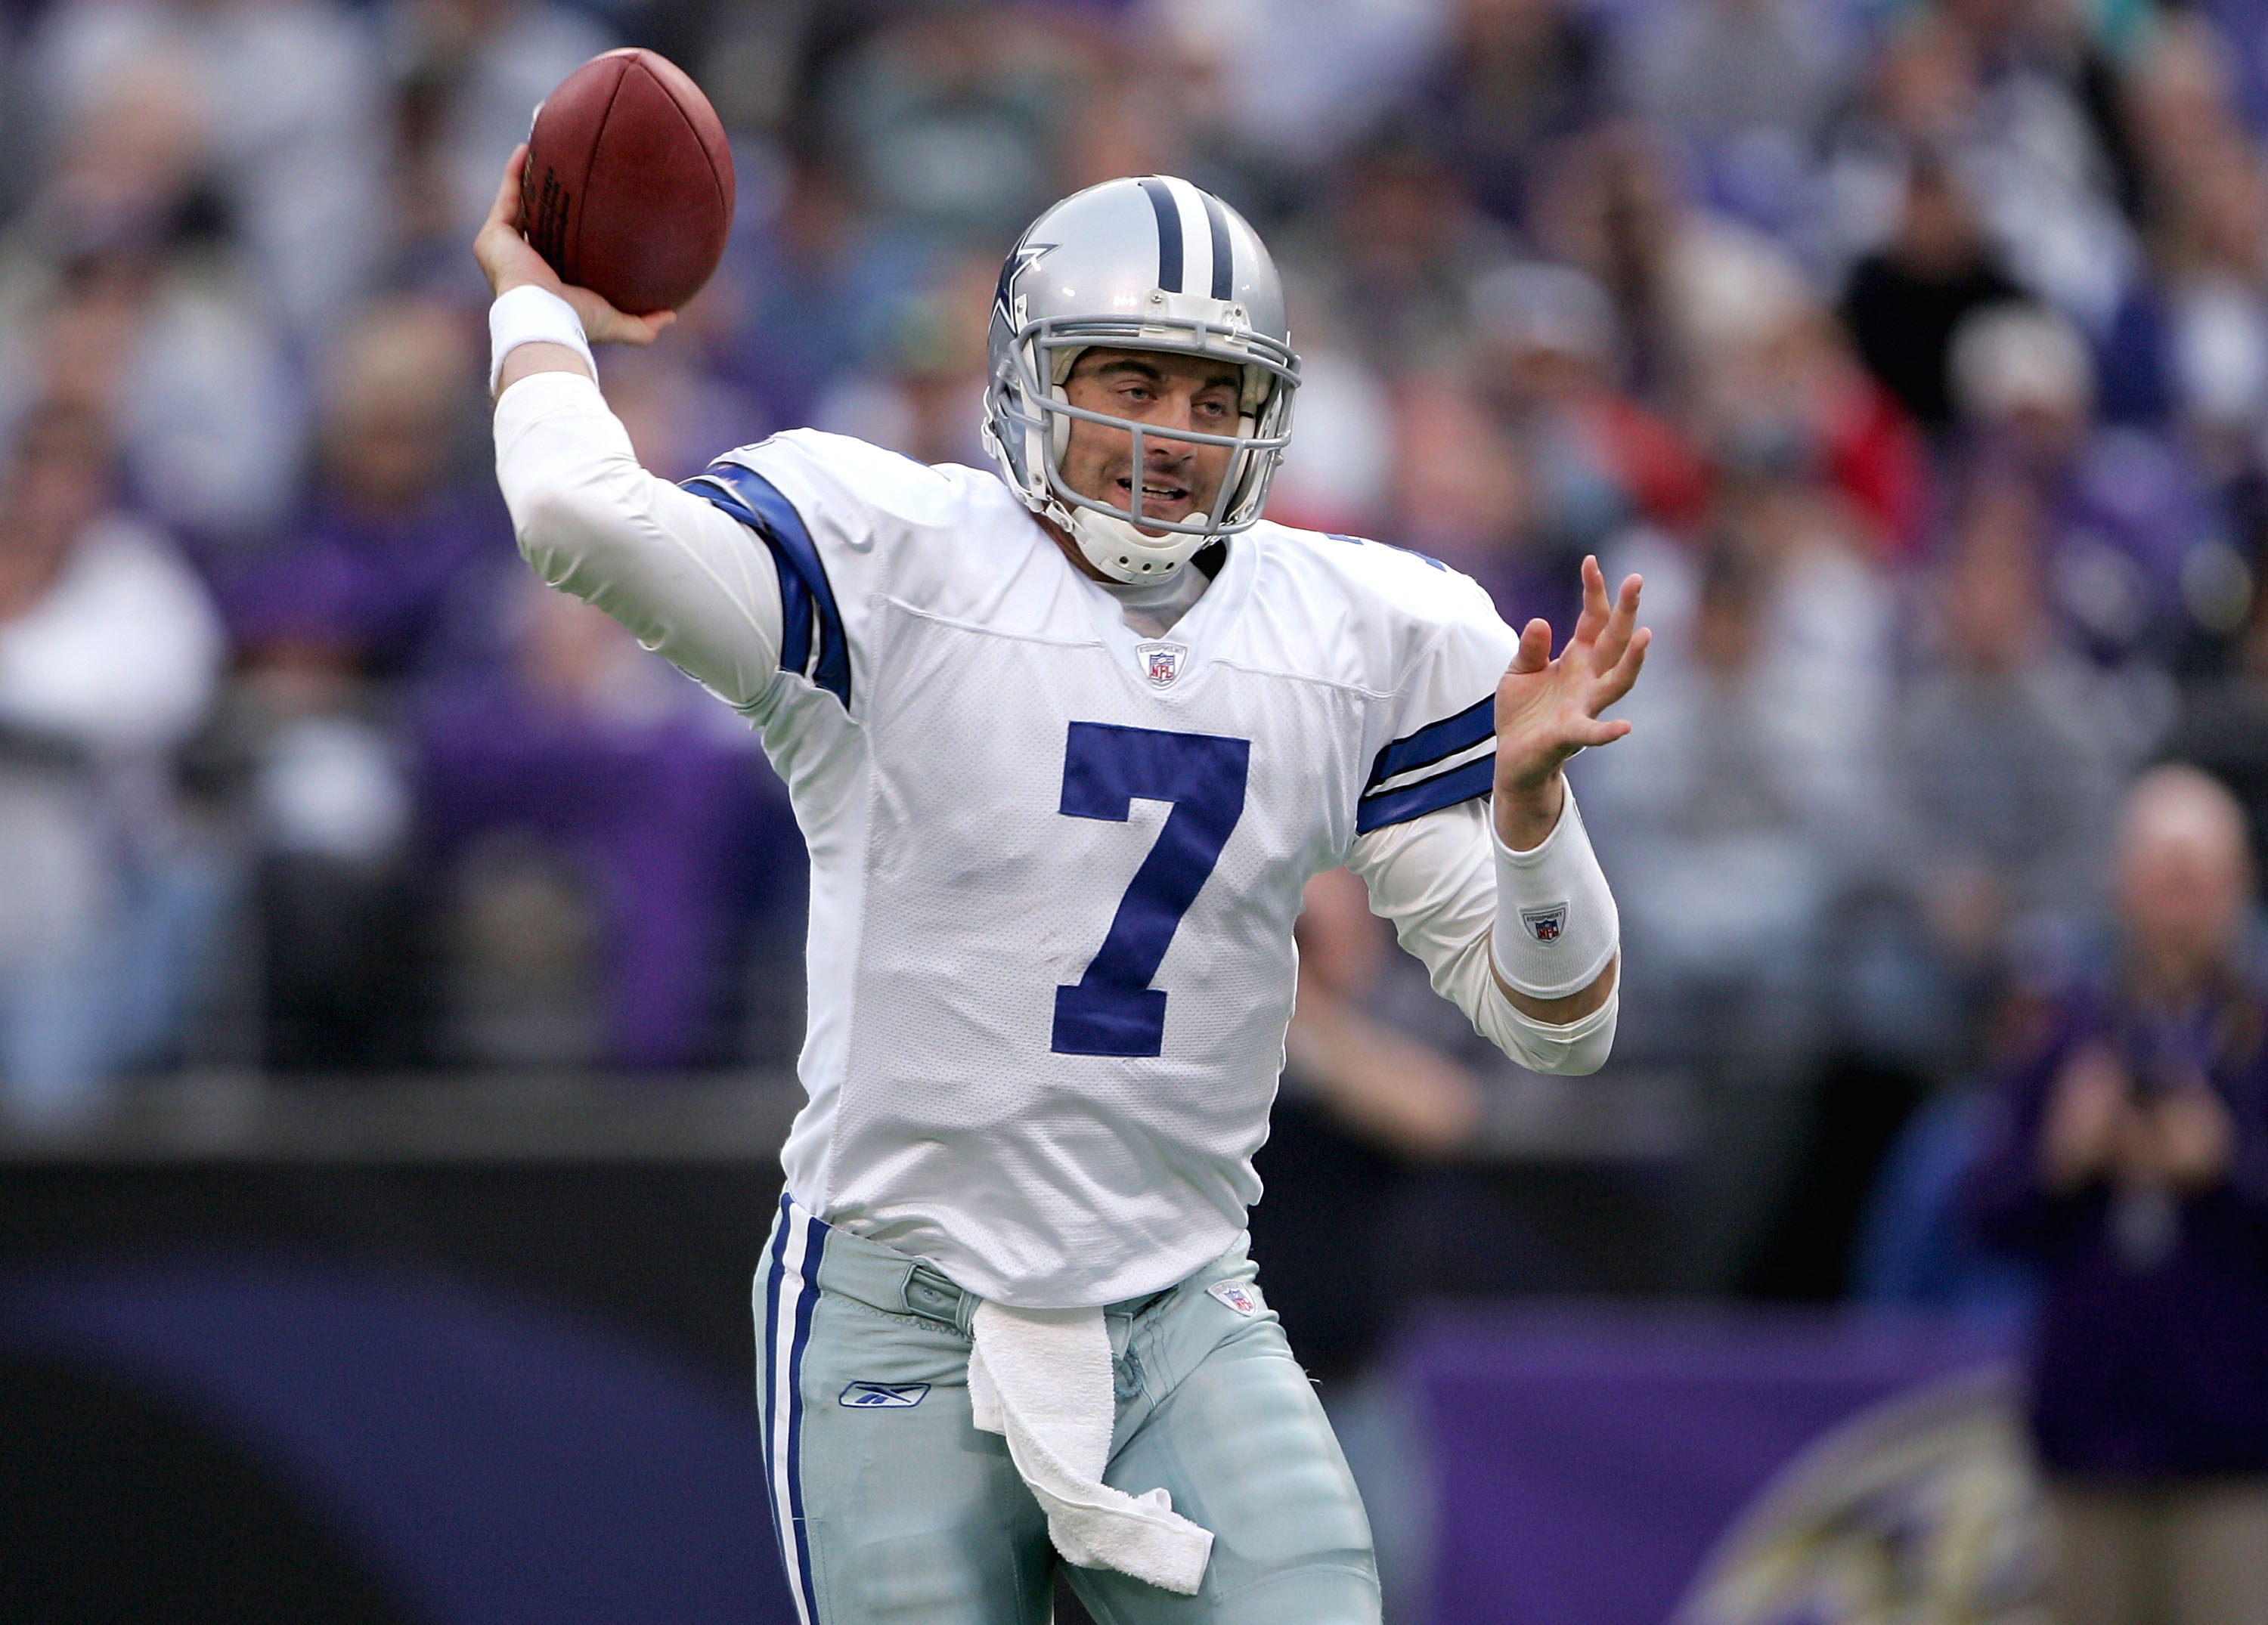 Drew Henson's path to a starting job with the Dallas Cowboys was blocked by Tony Romo. | Doug Pensinger/Getty Images